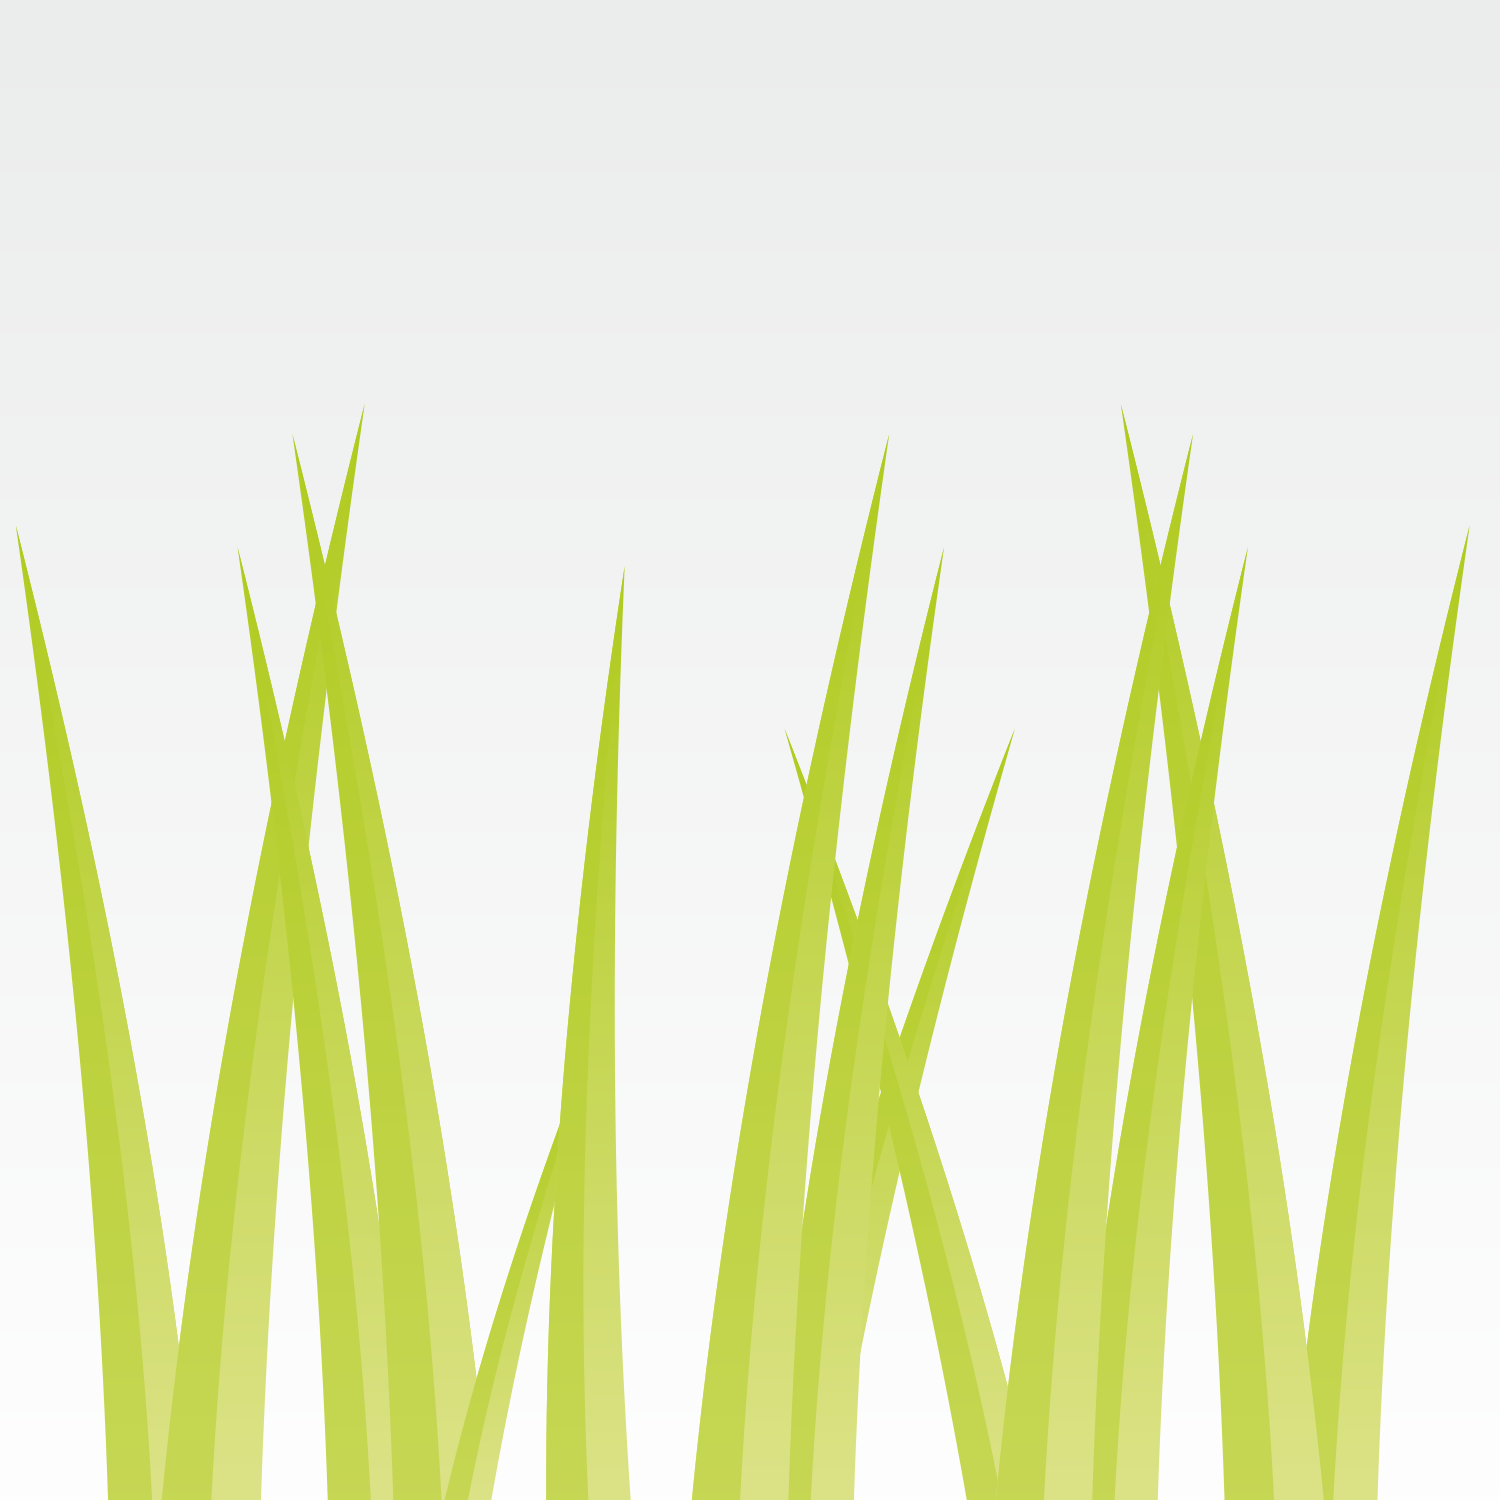 Green grass on grey background.